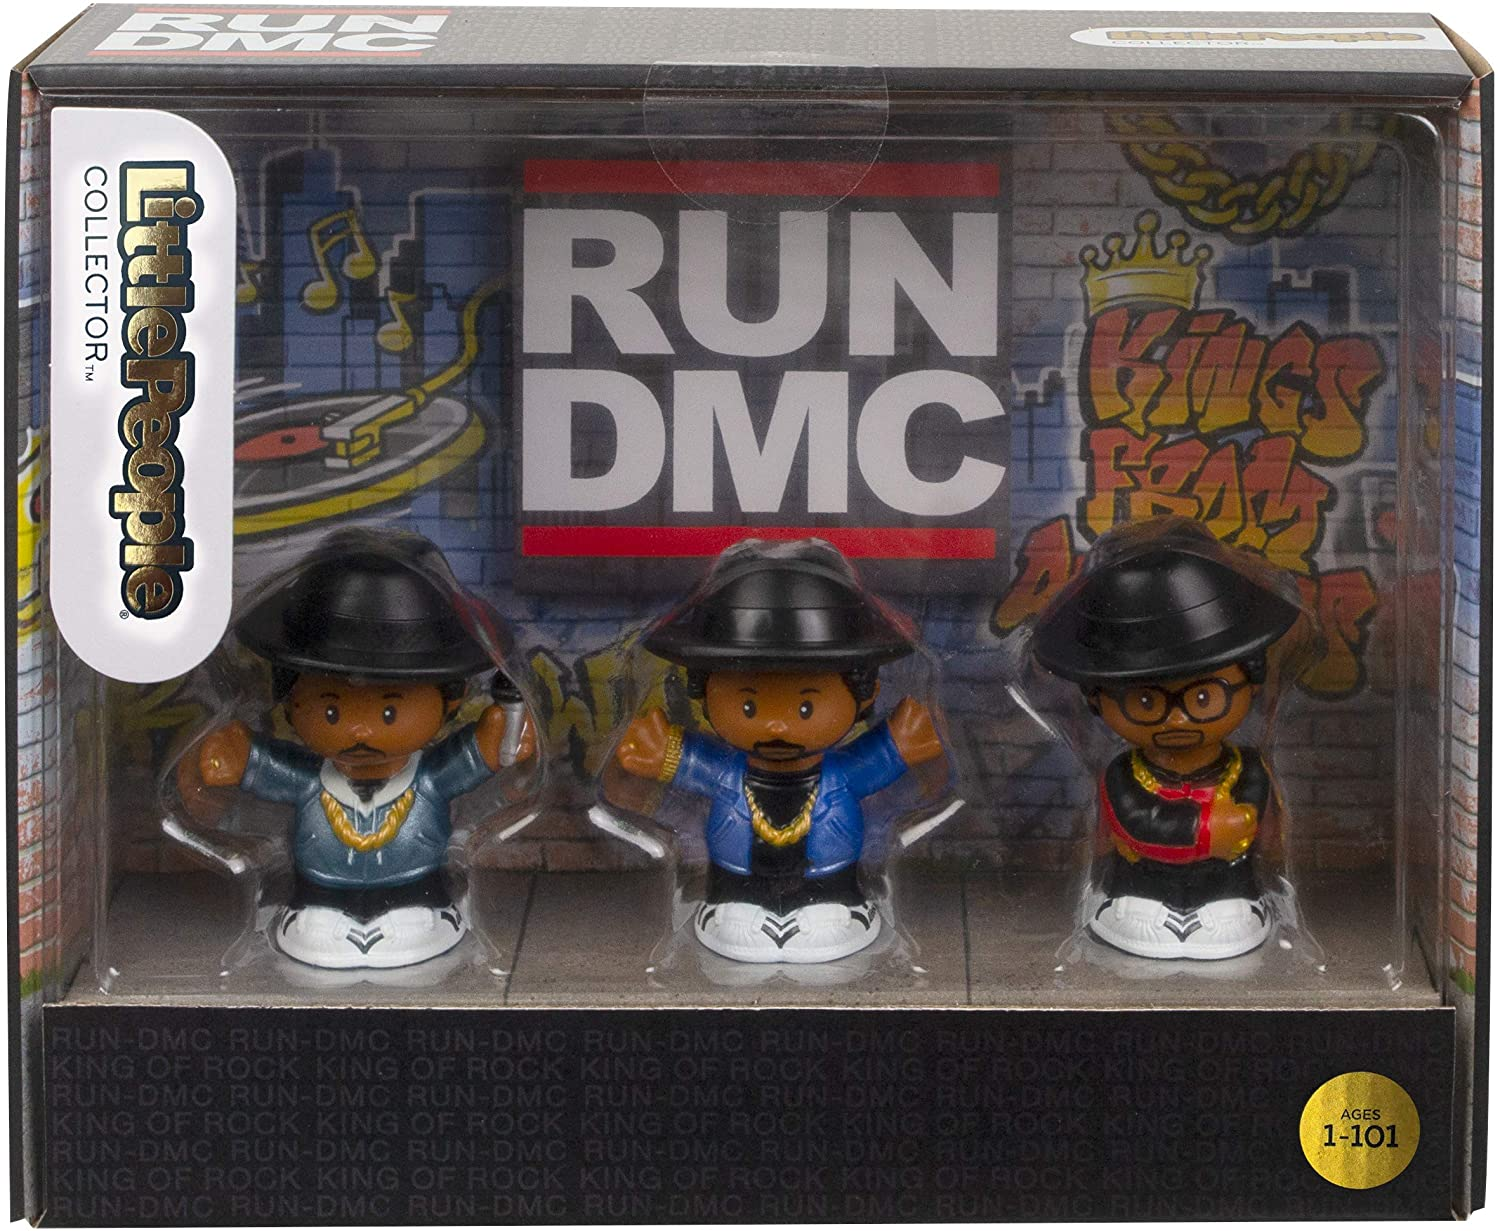 Run DMC gets a Little People figure set from Fisher-Price 15